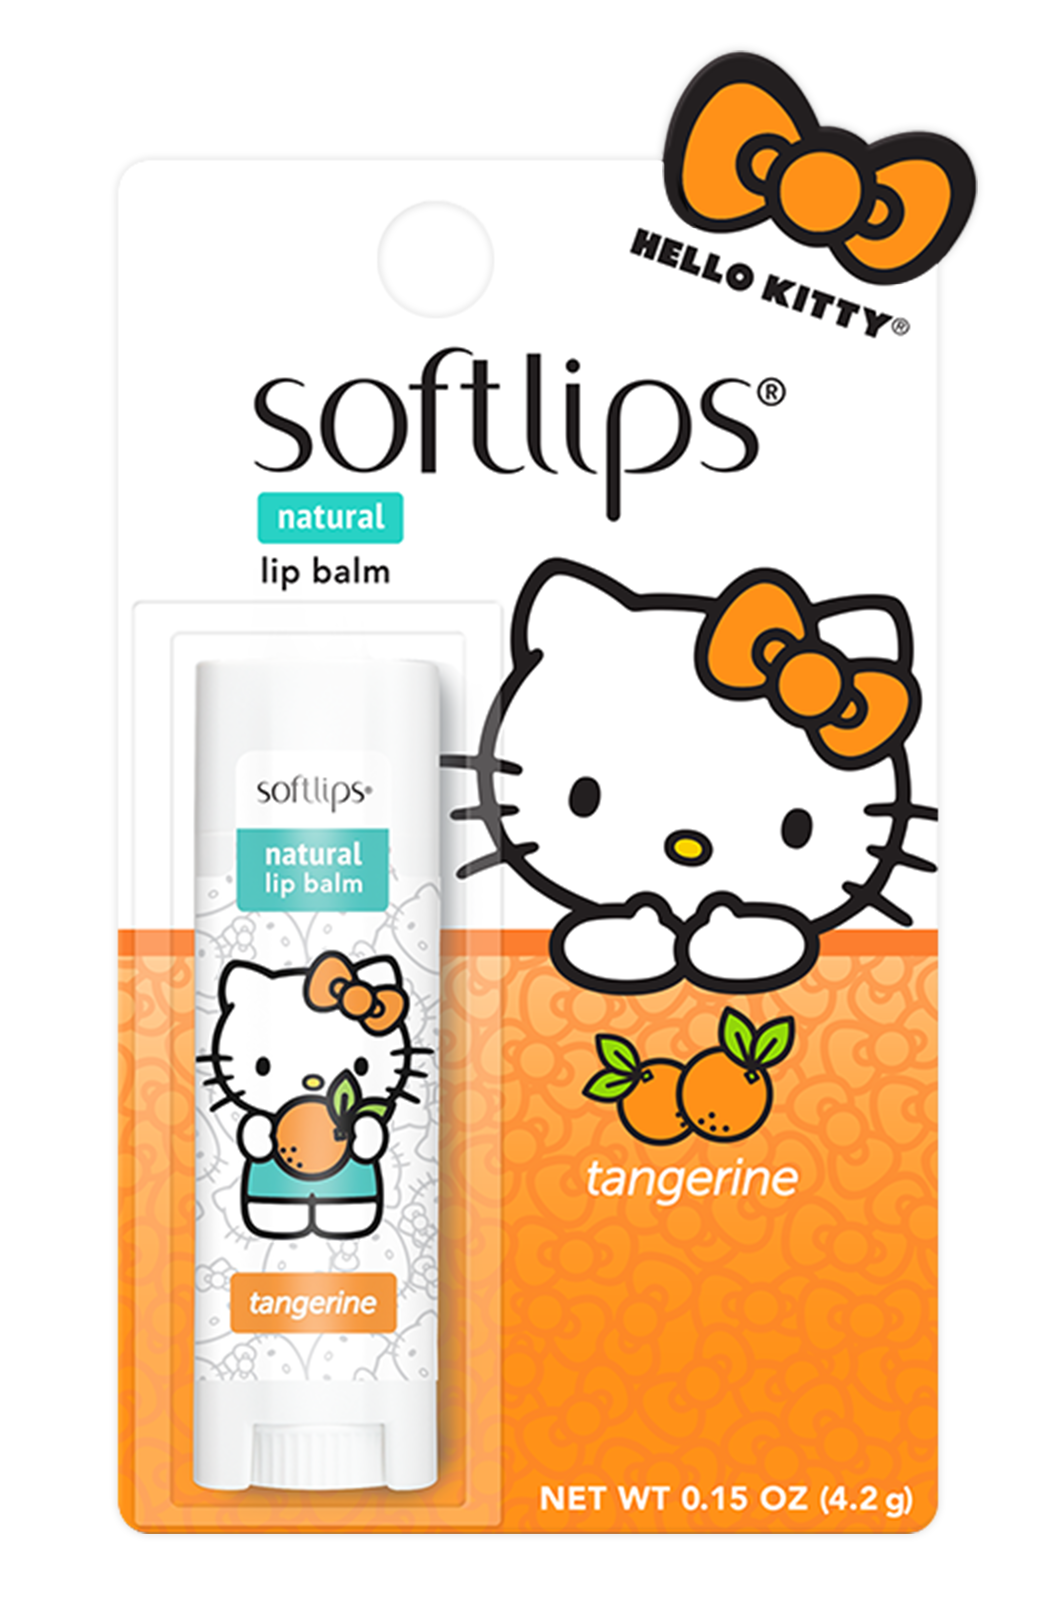 MENTHOLATUM SOFTLIPS LIP BALM HELLO KITTY TANGERINE